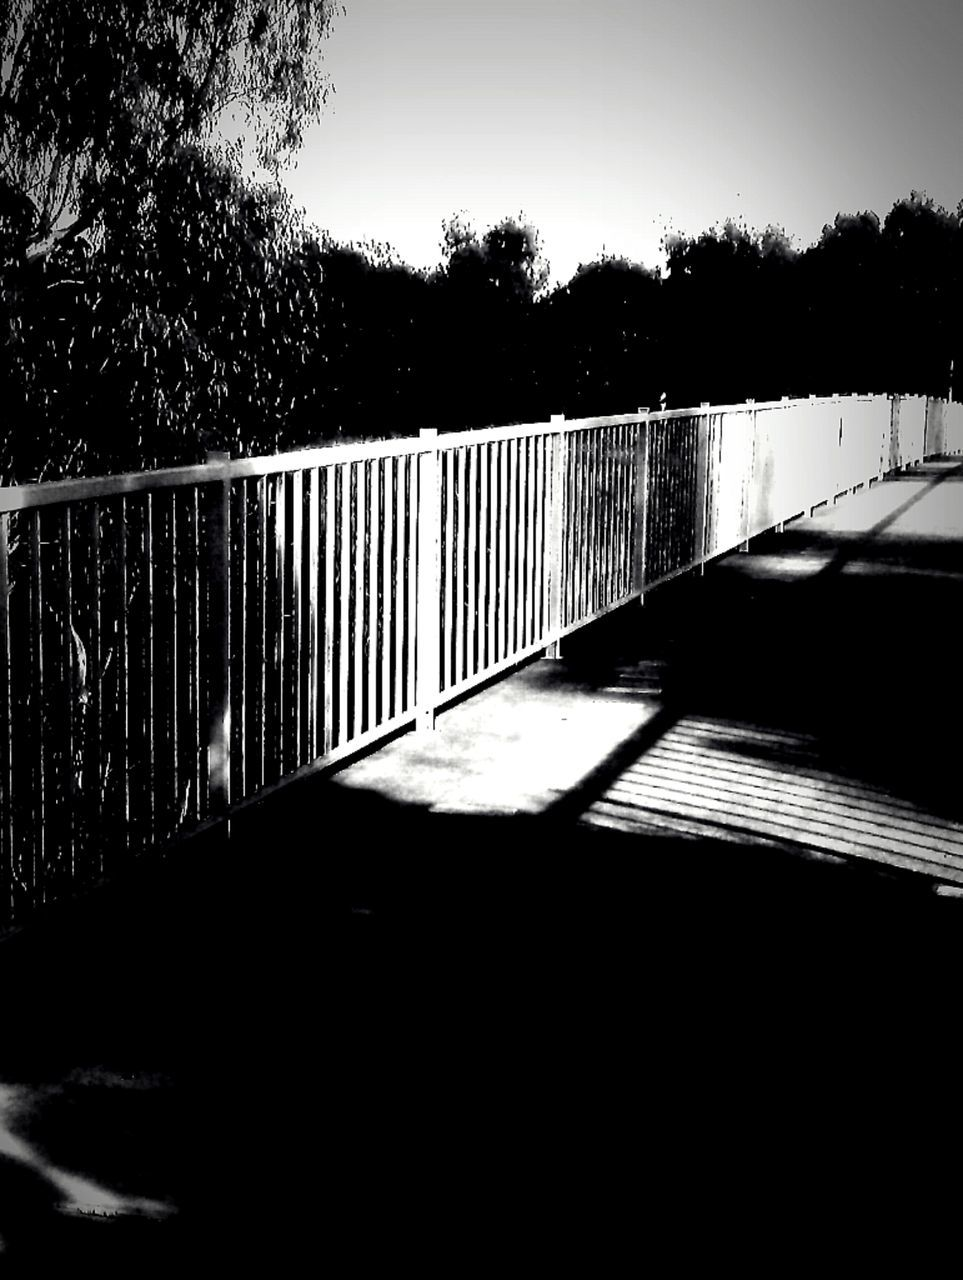 Railing with silhouette trees in background